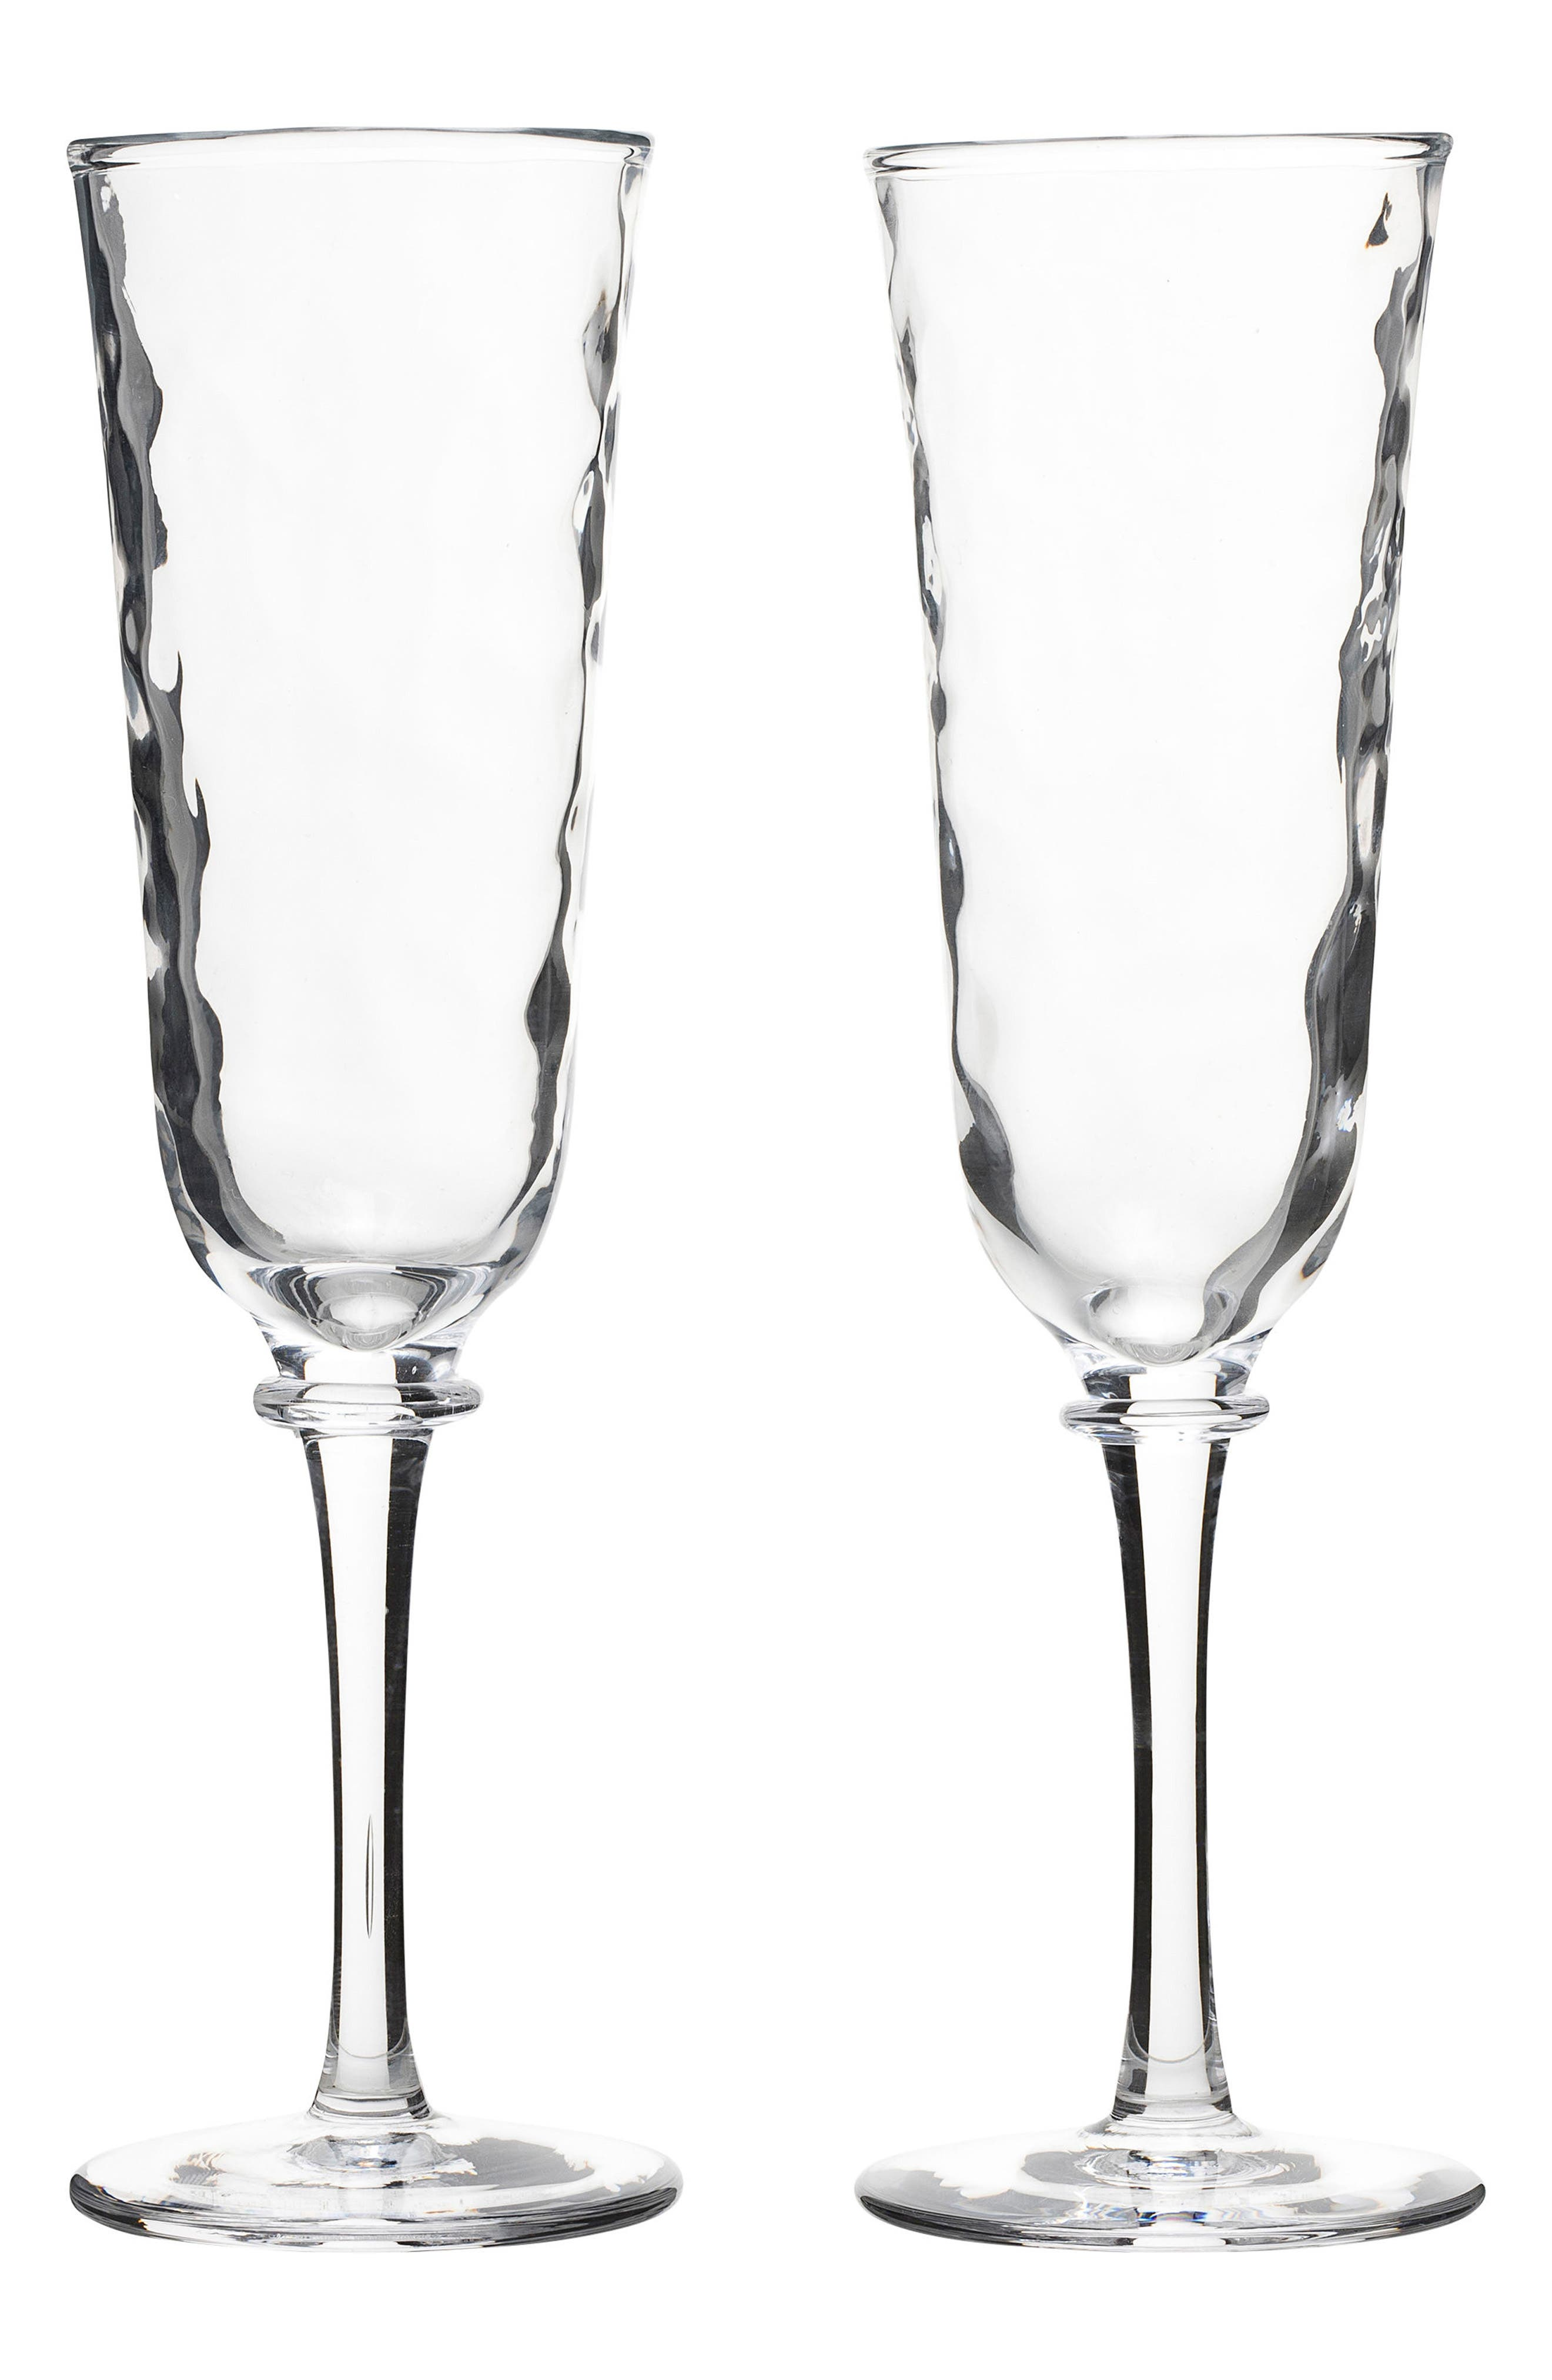 Carine Set of 2 Champagne Flutes,                             Main thumbnail 1, color,                             CLEAR